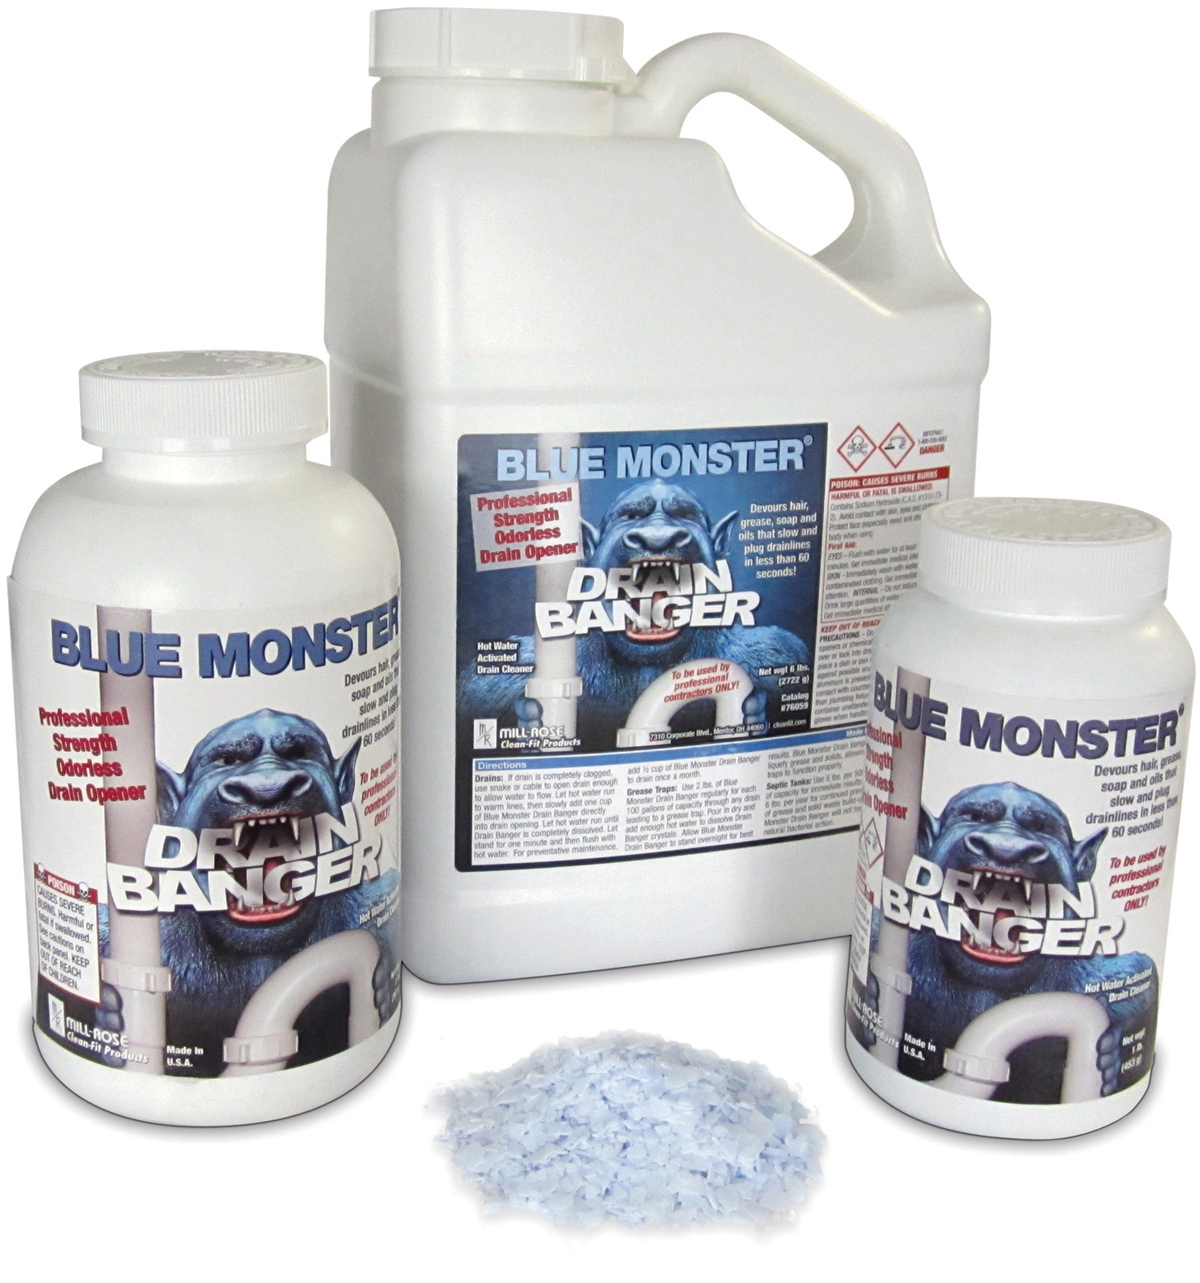 Blue Monster 174 Drain Banger Now Available In 3 Convenient